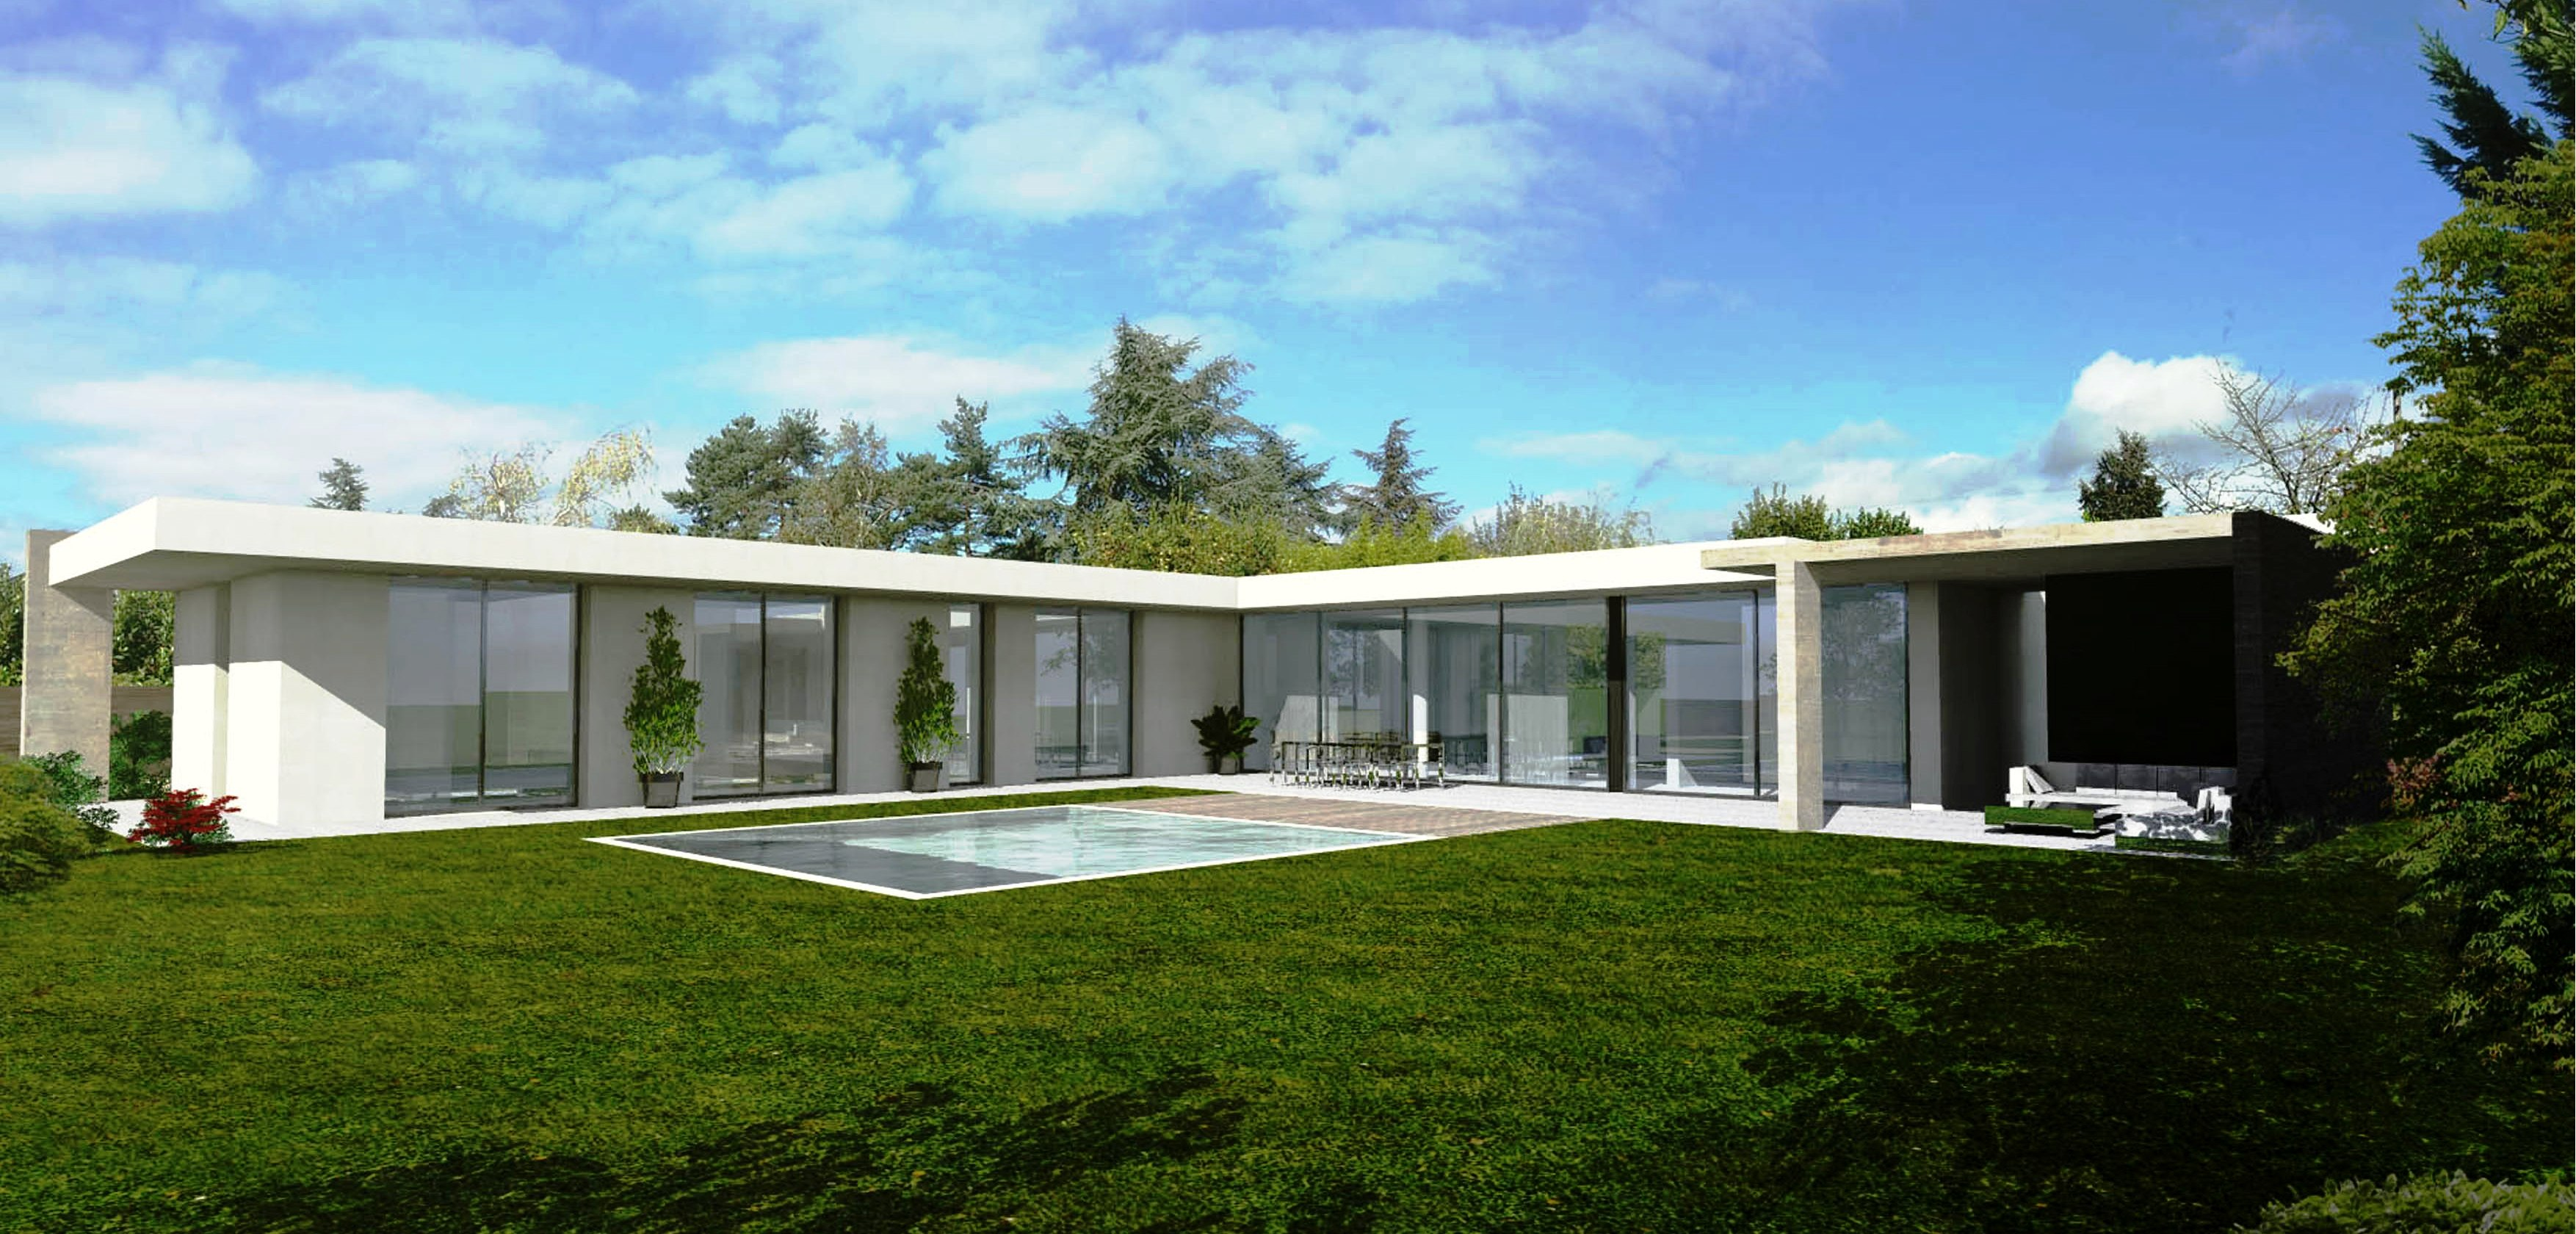 Plan architecte maison contemporaine maison moderne for Villas modernes architecture